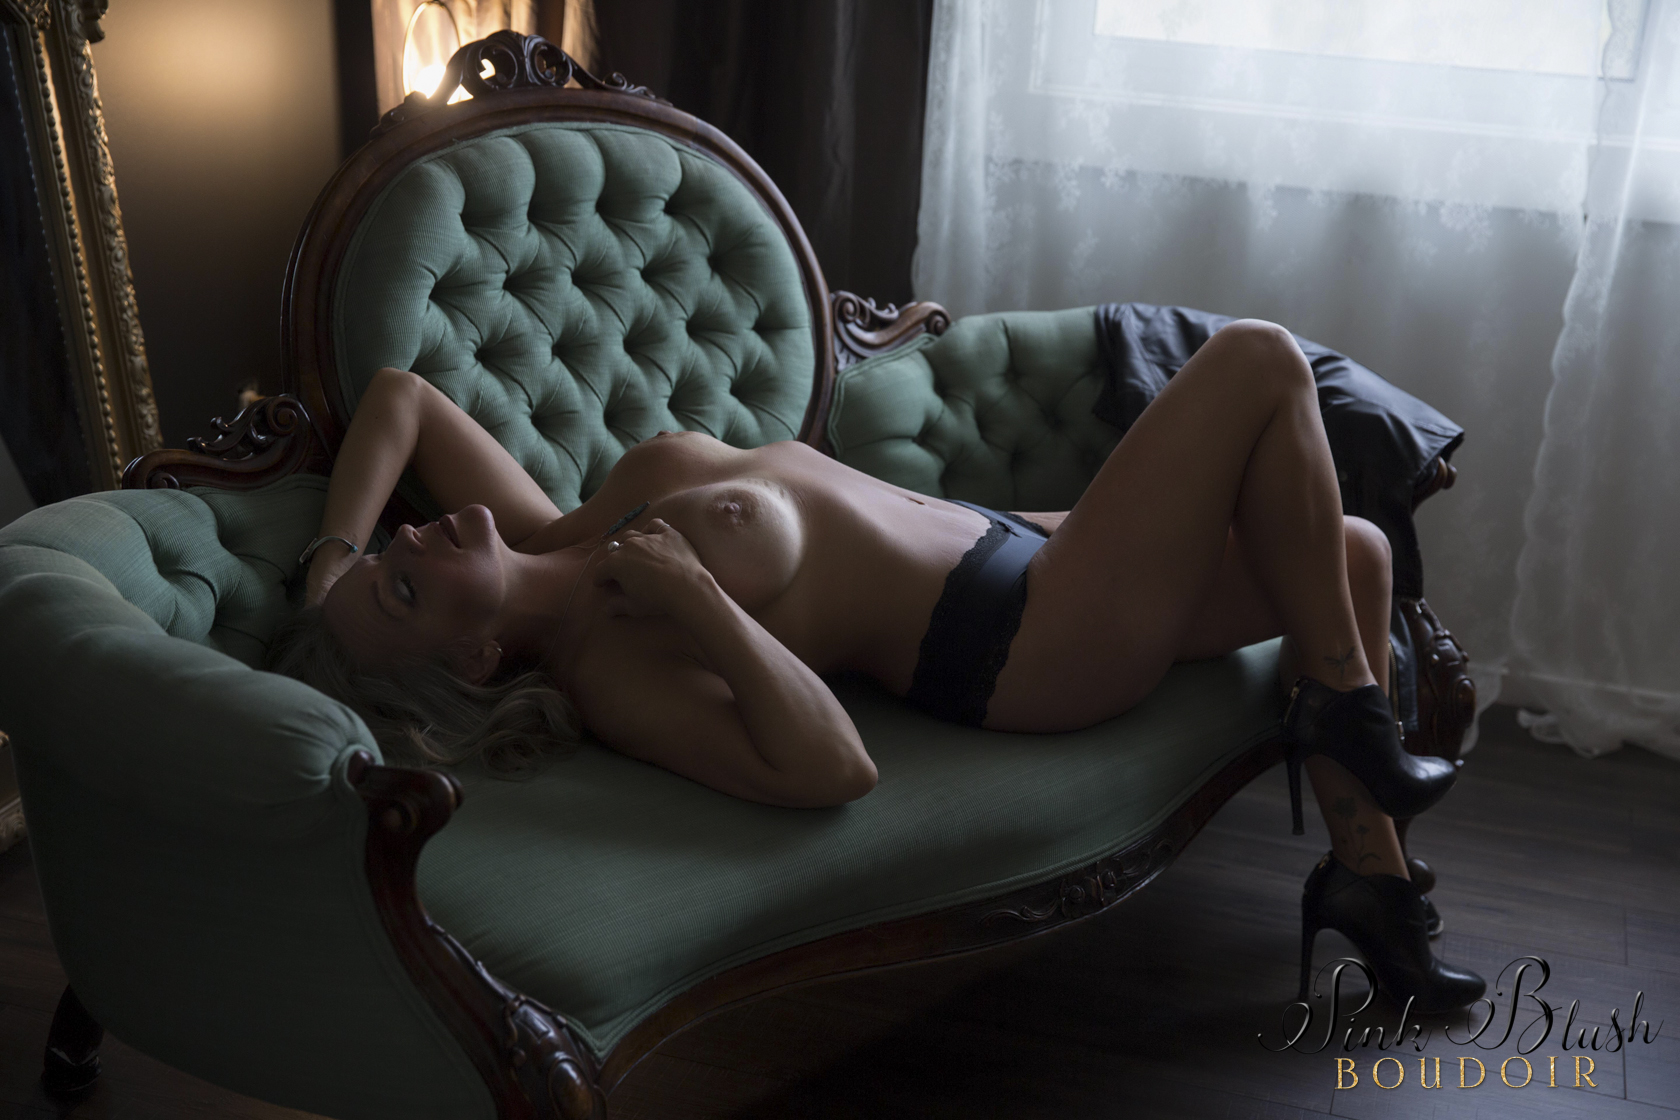 boudoir photos, a topless woman on a green couch